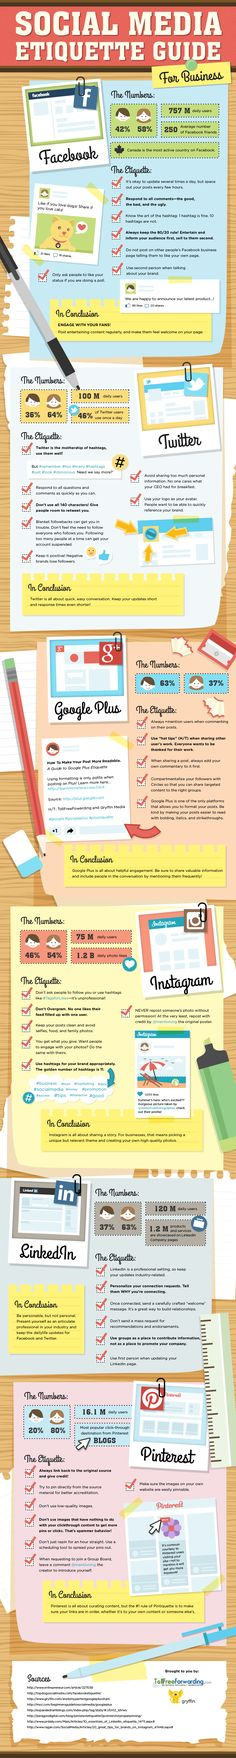 A Visual Guide to Social Media Etiquette